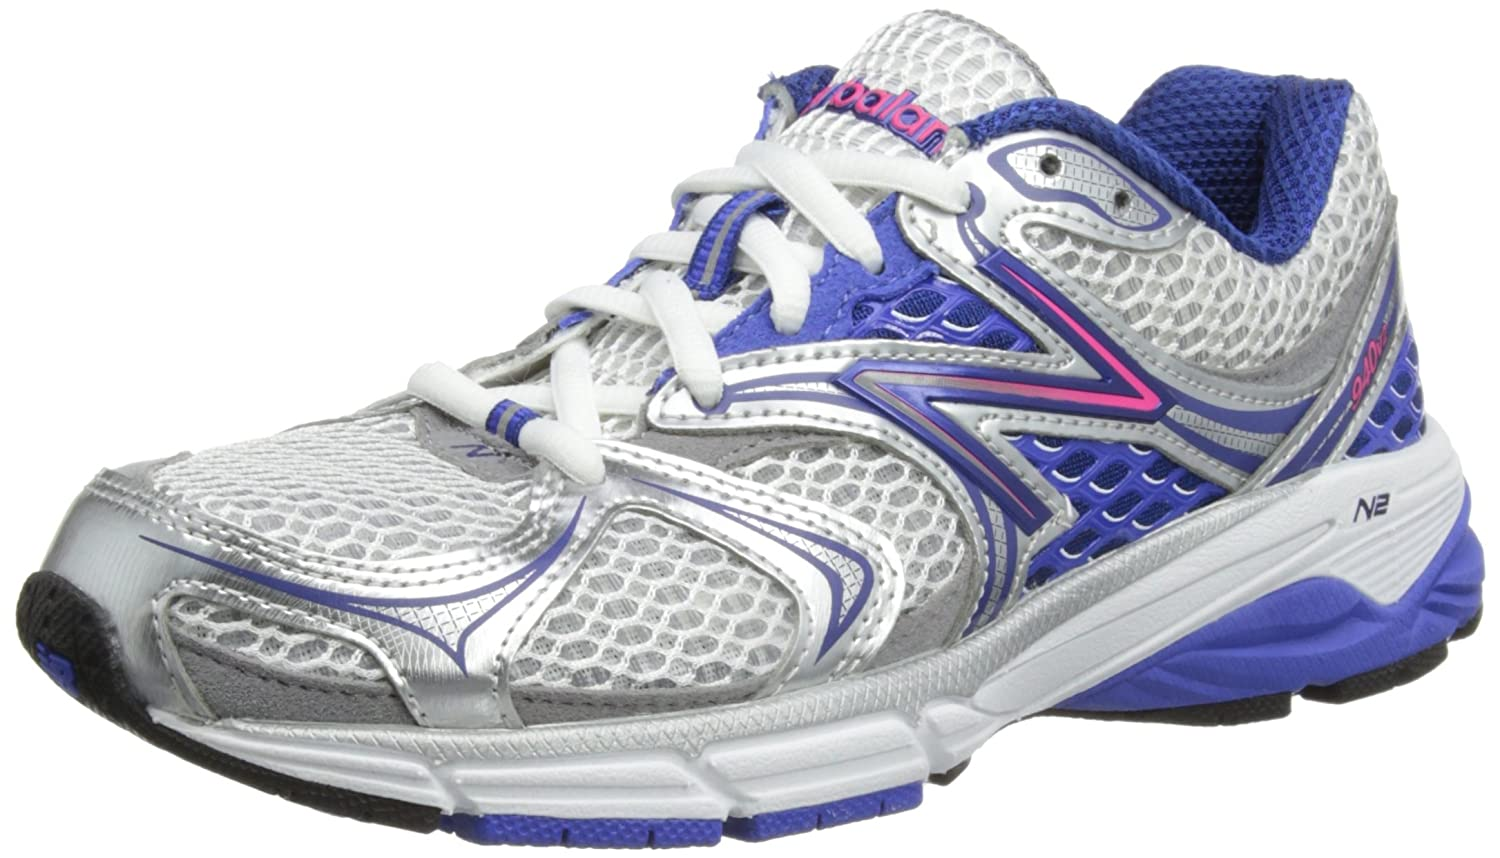 New Balance Women's W940V2 Running Shoe,White/Blue,8.5 2E US